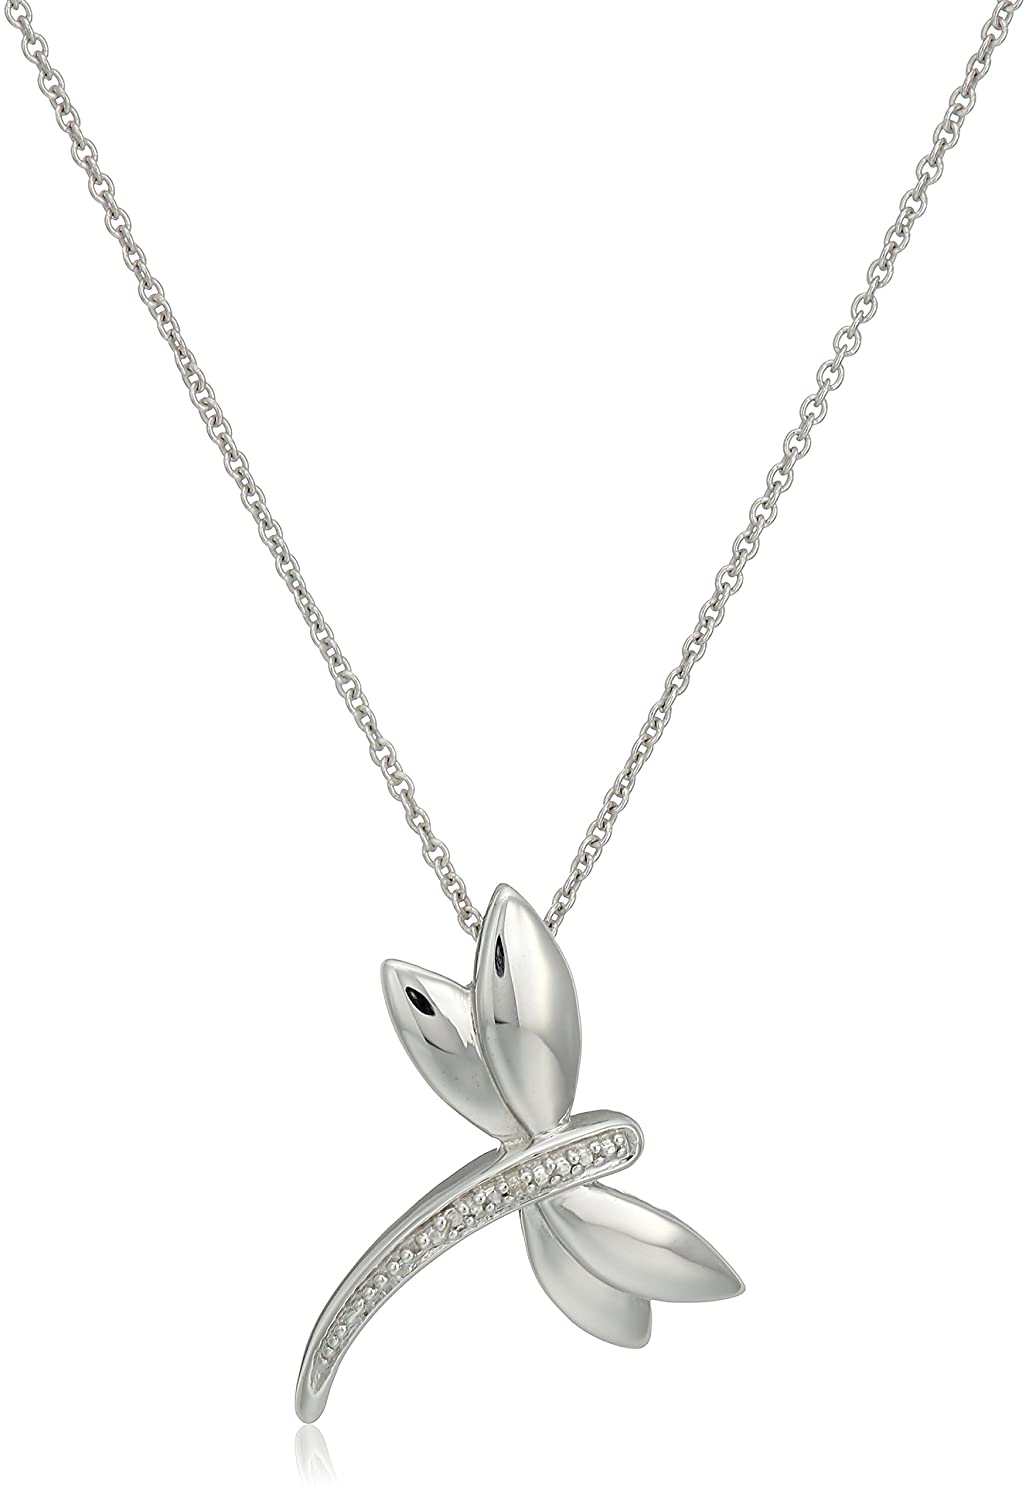 dragonfly p pave pendant heart charm bling sterling pl cz jewelry necklace silver butterfly